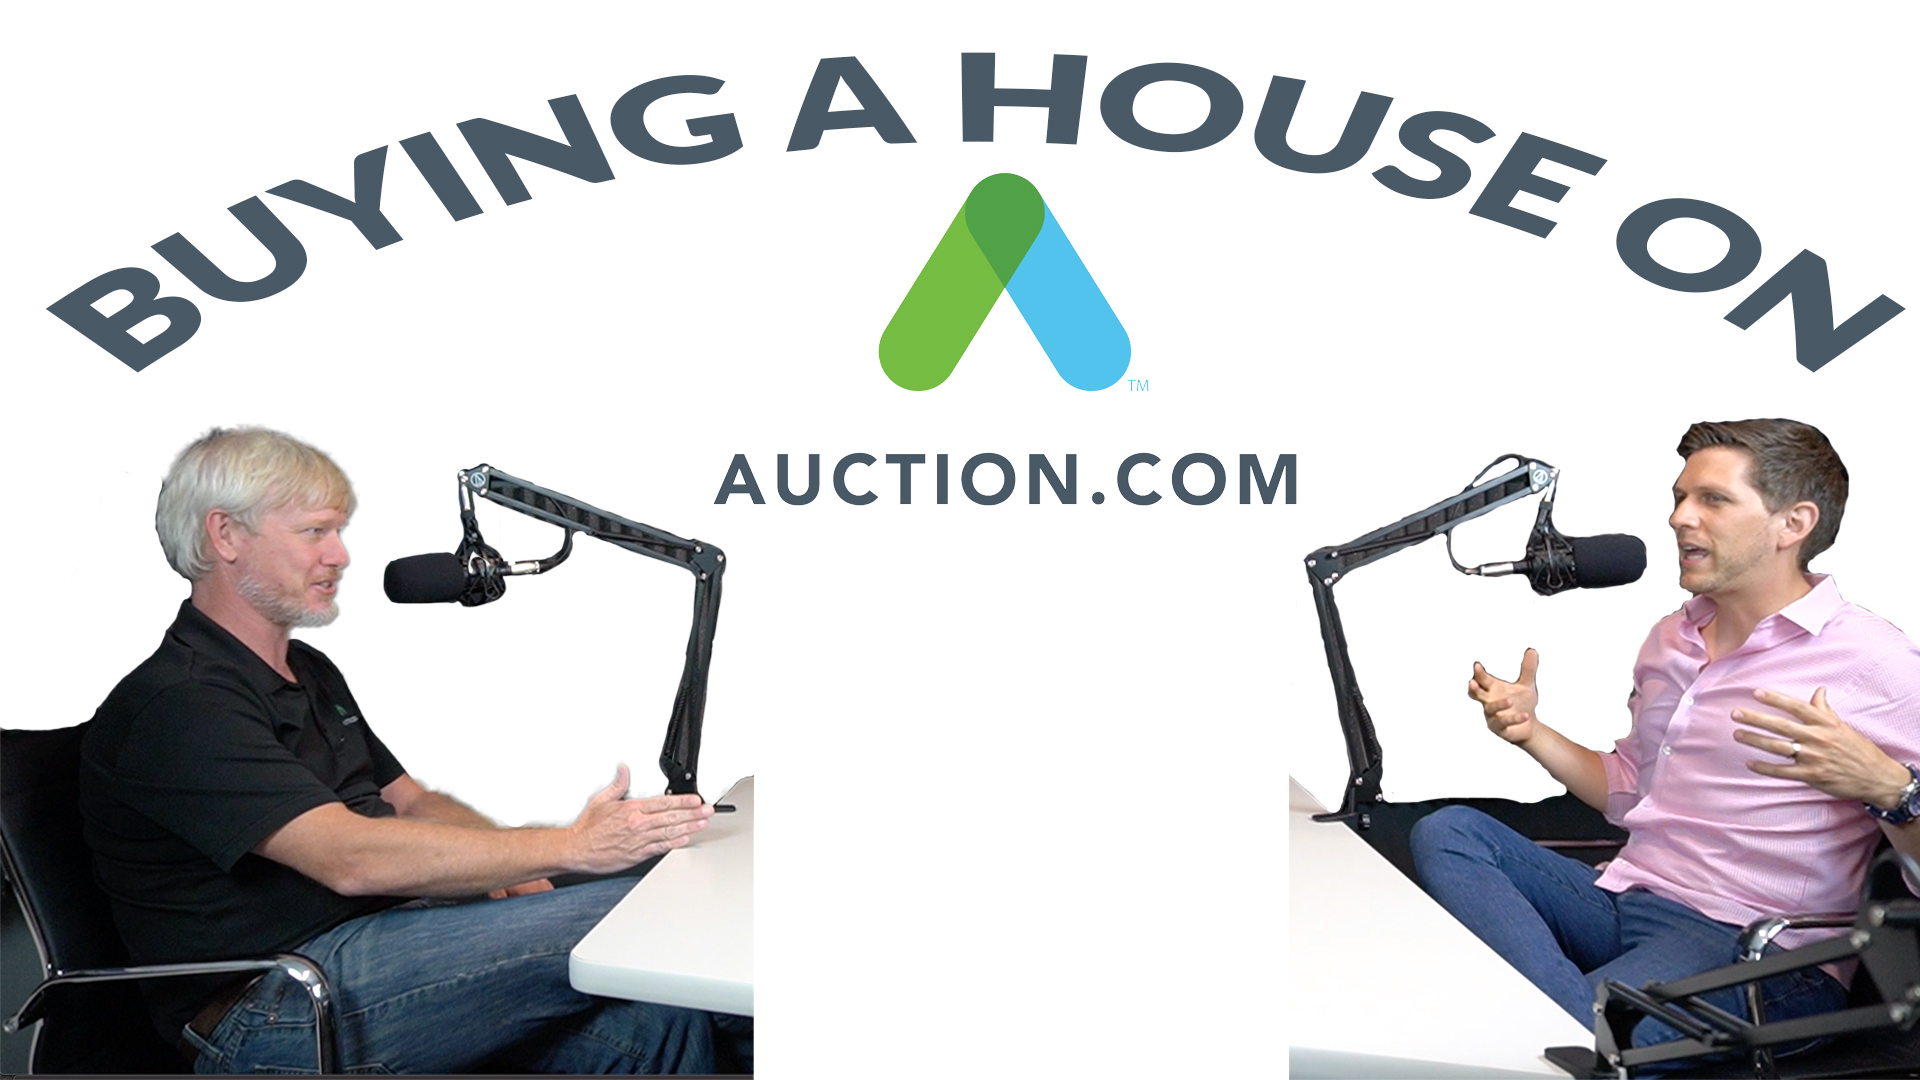 BUYING HOUSES ON AUCTION COM | AREN 107